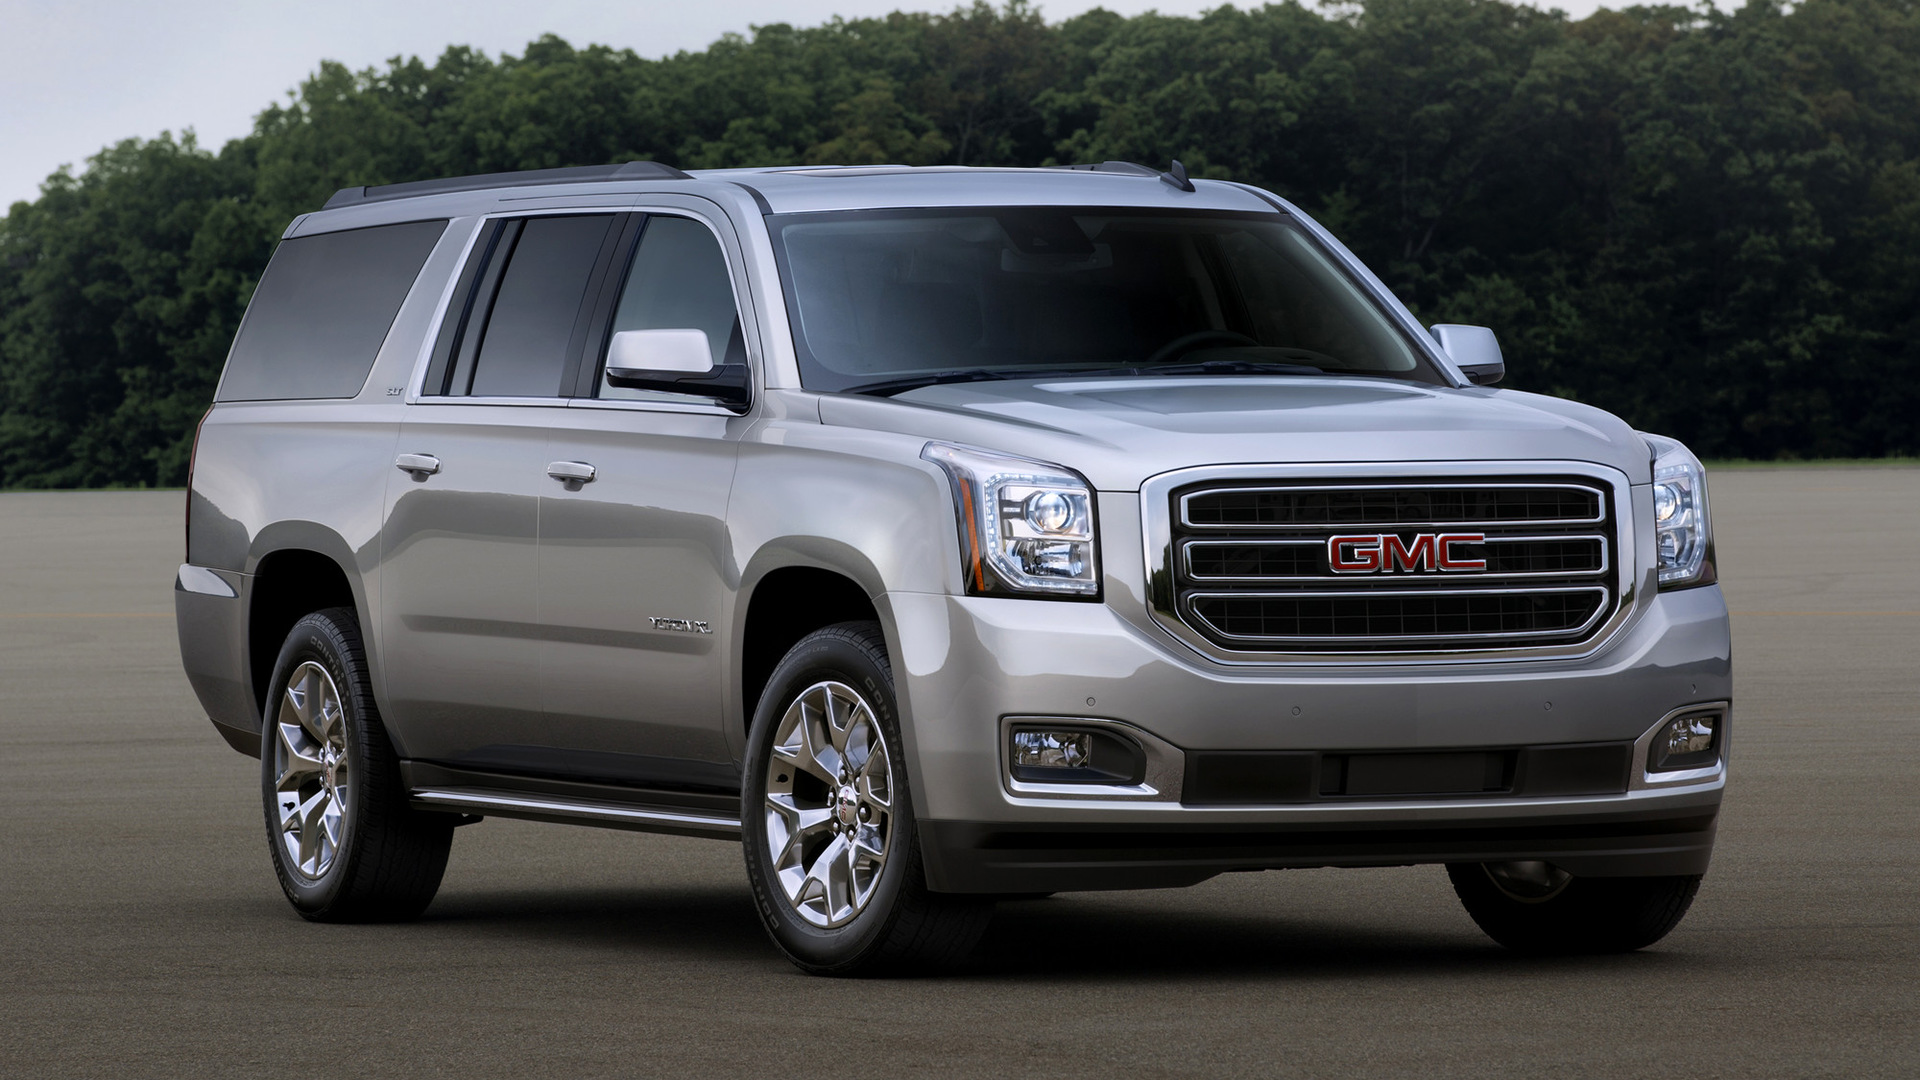 2008 gmc yukon denali owners manual